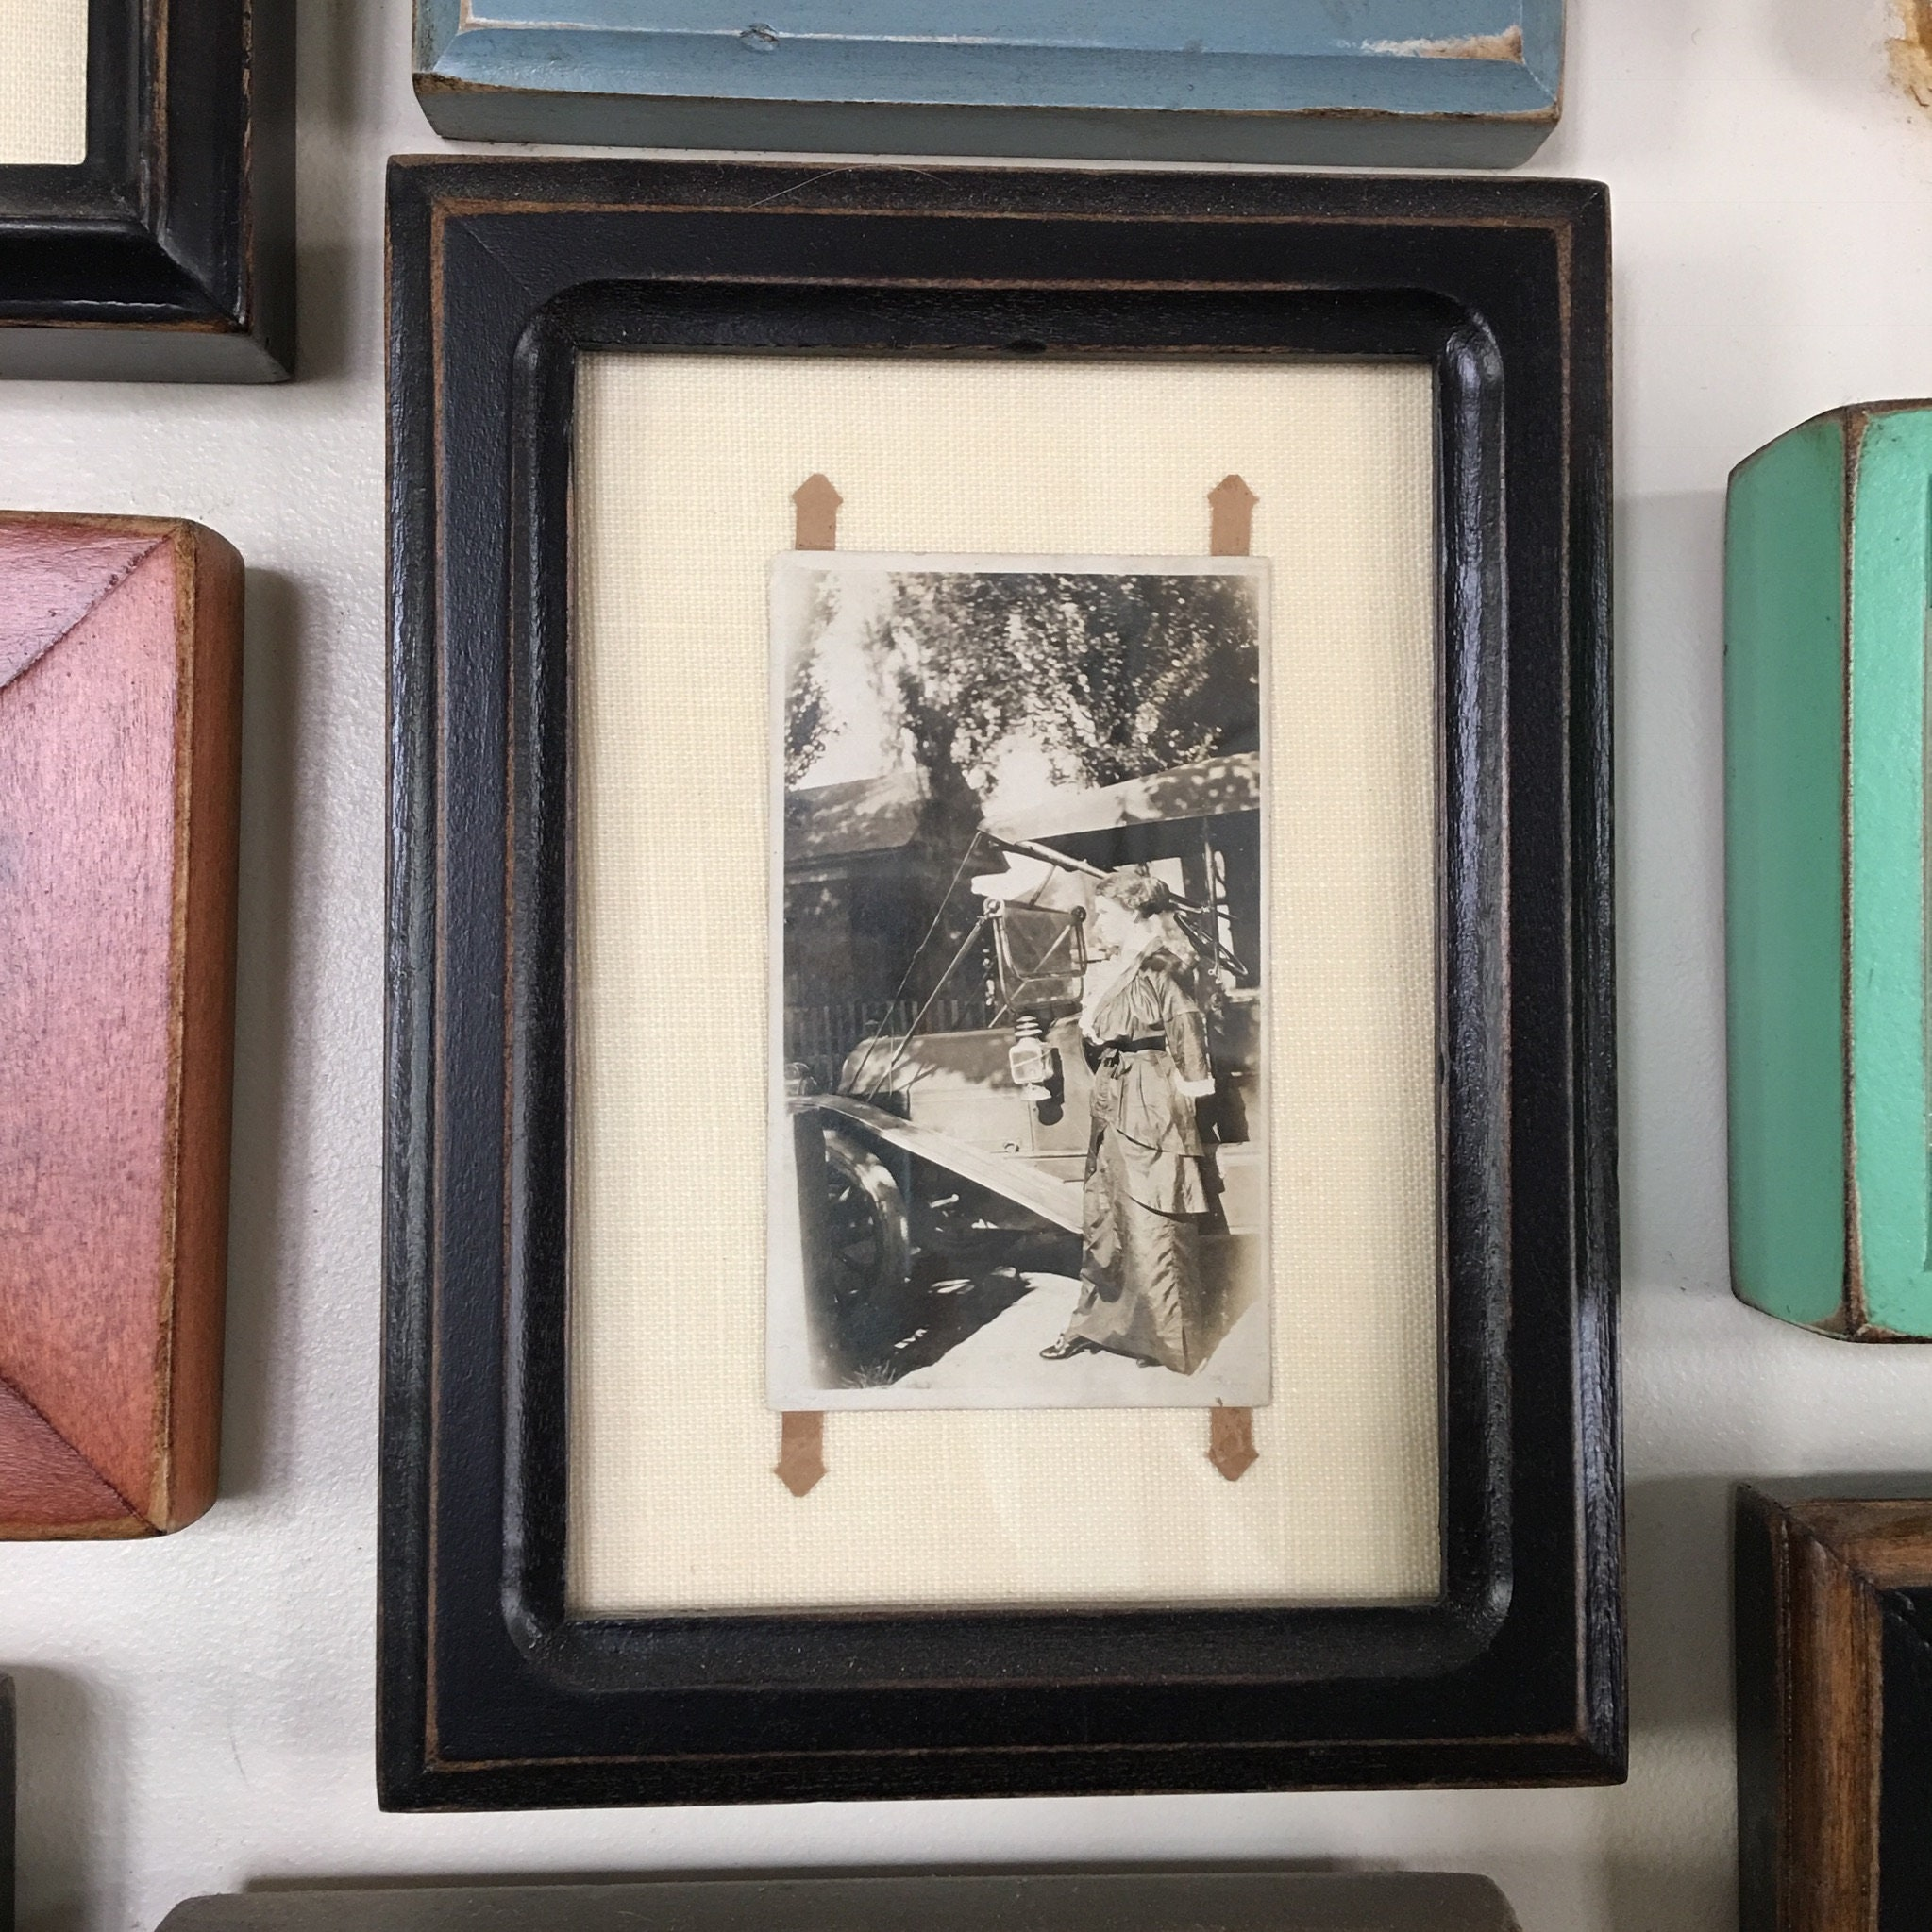 35x45 Aceo Or Wallet Size Picture Frame In Double Cove Style And